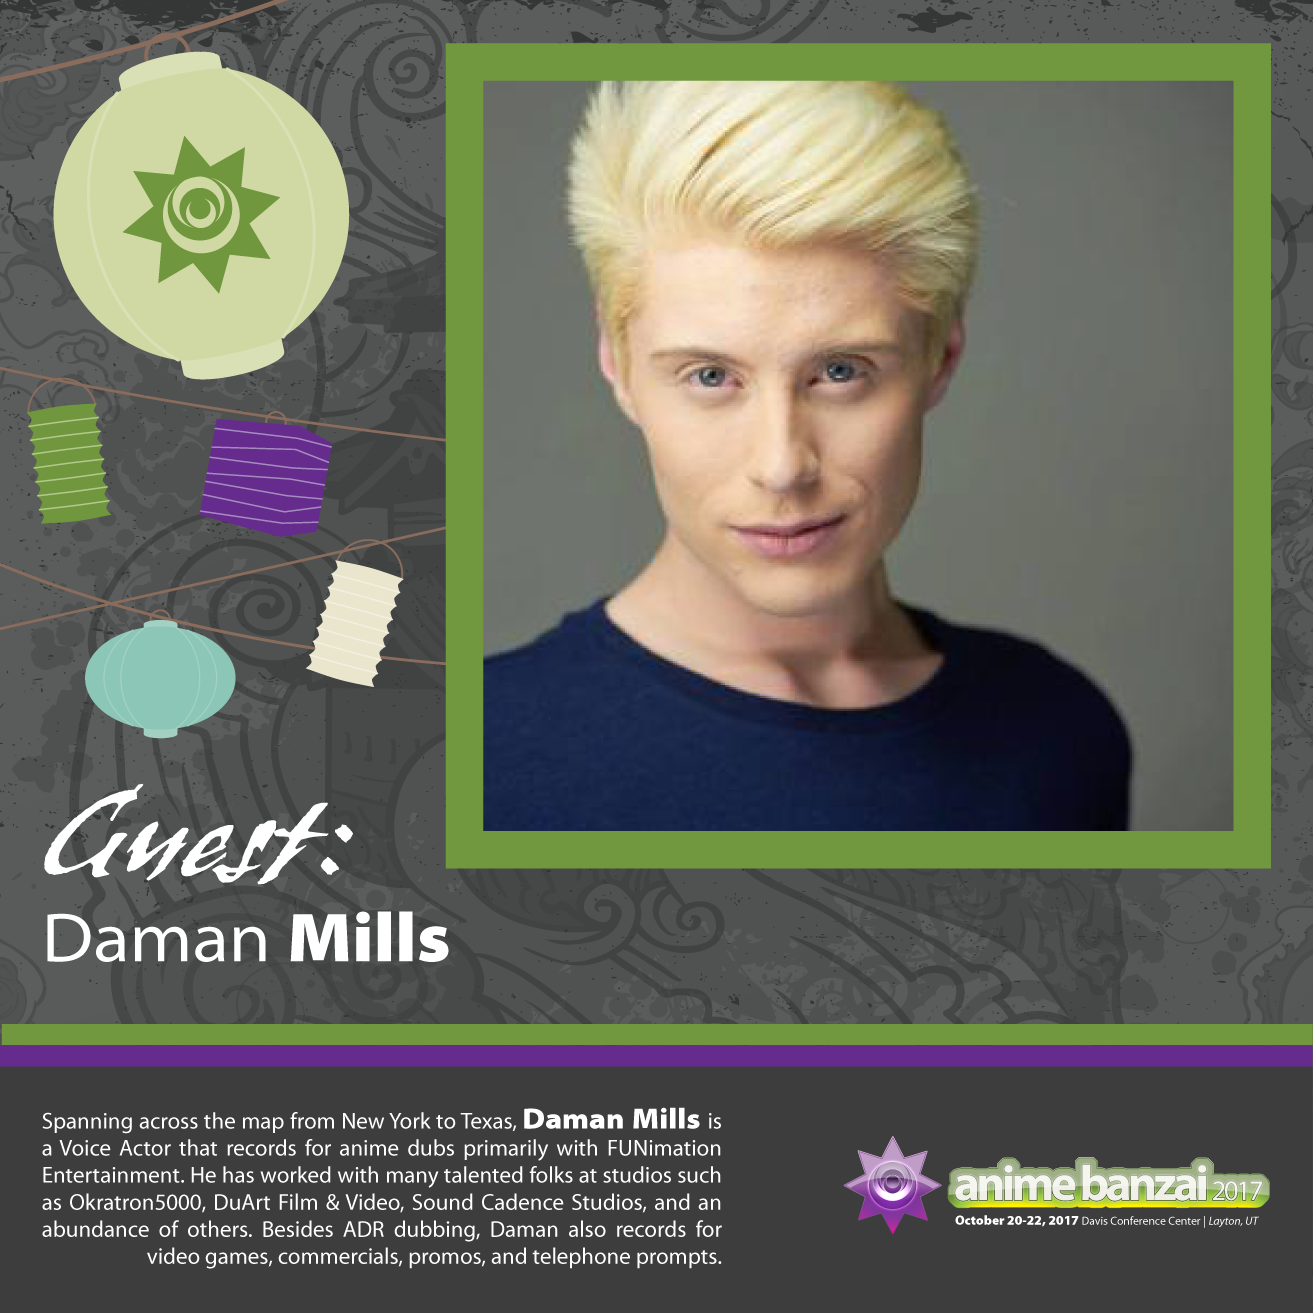 Welcome Our Next Anime Banzai 2017 Guest, Daman Mills